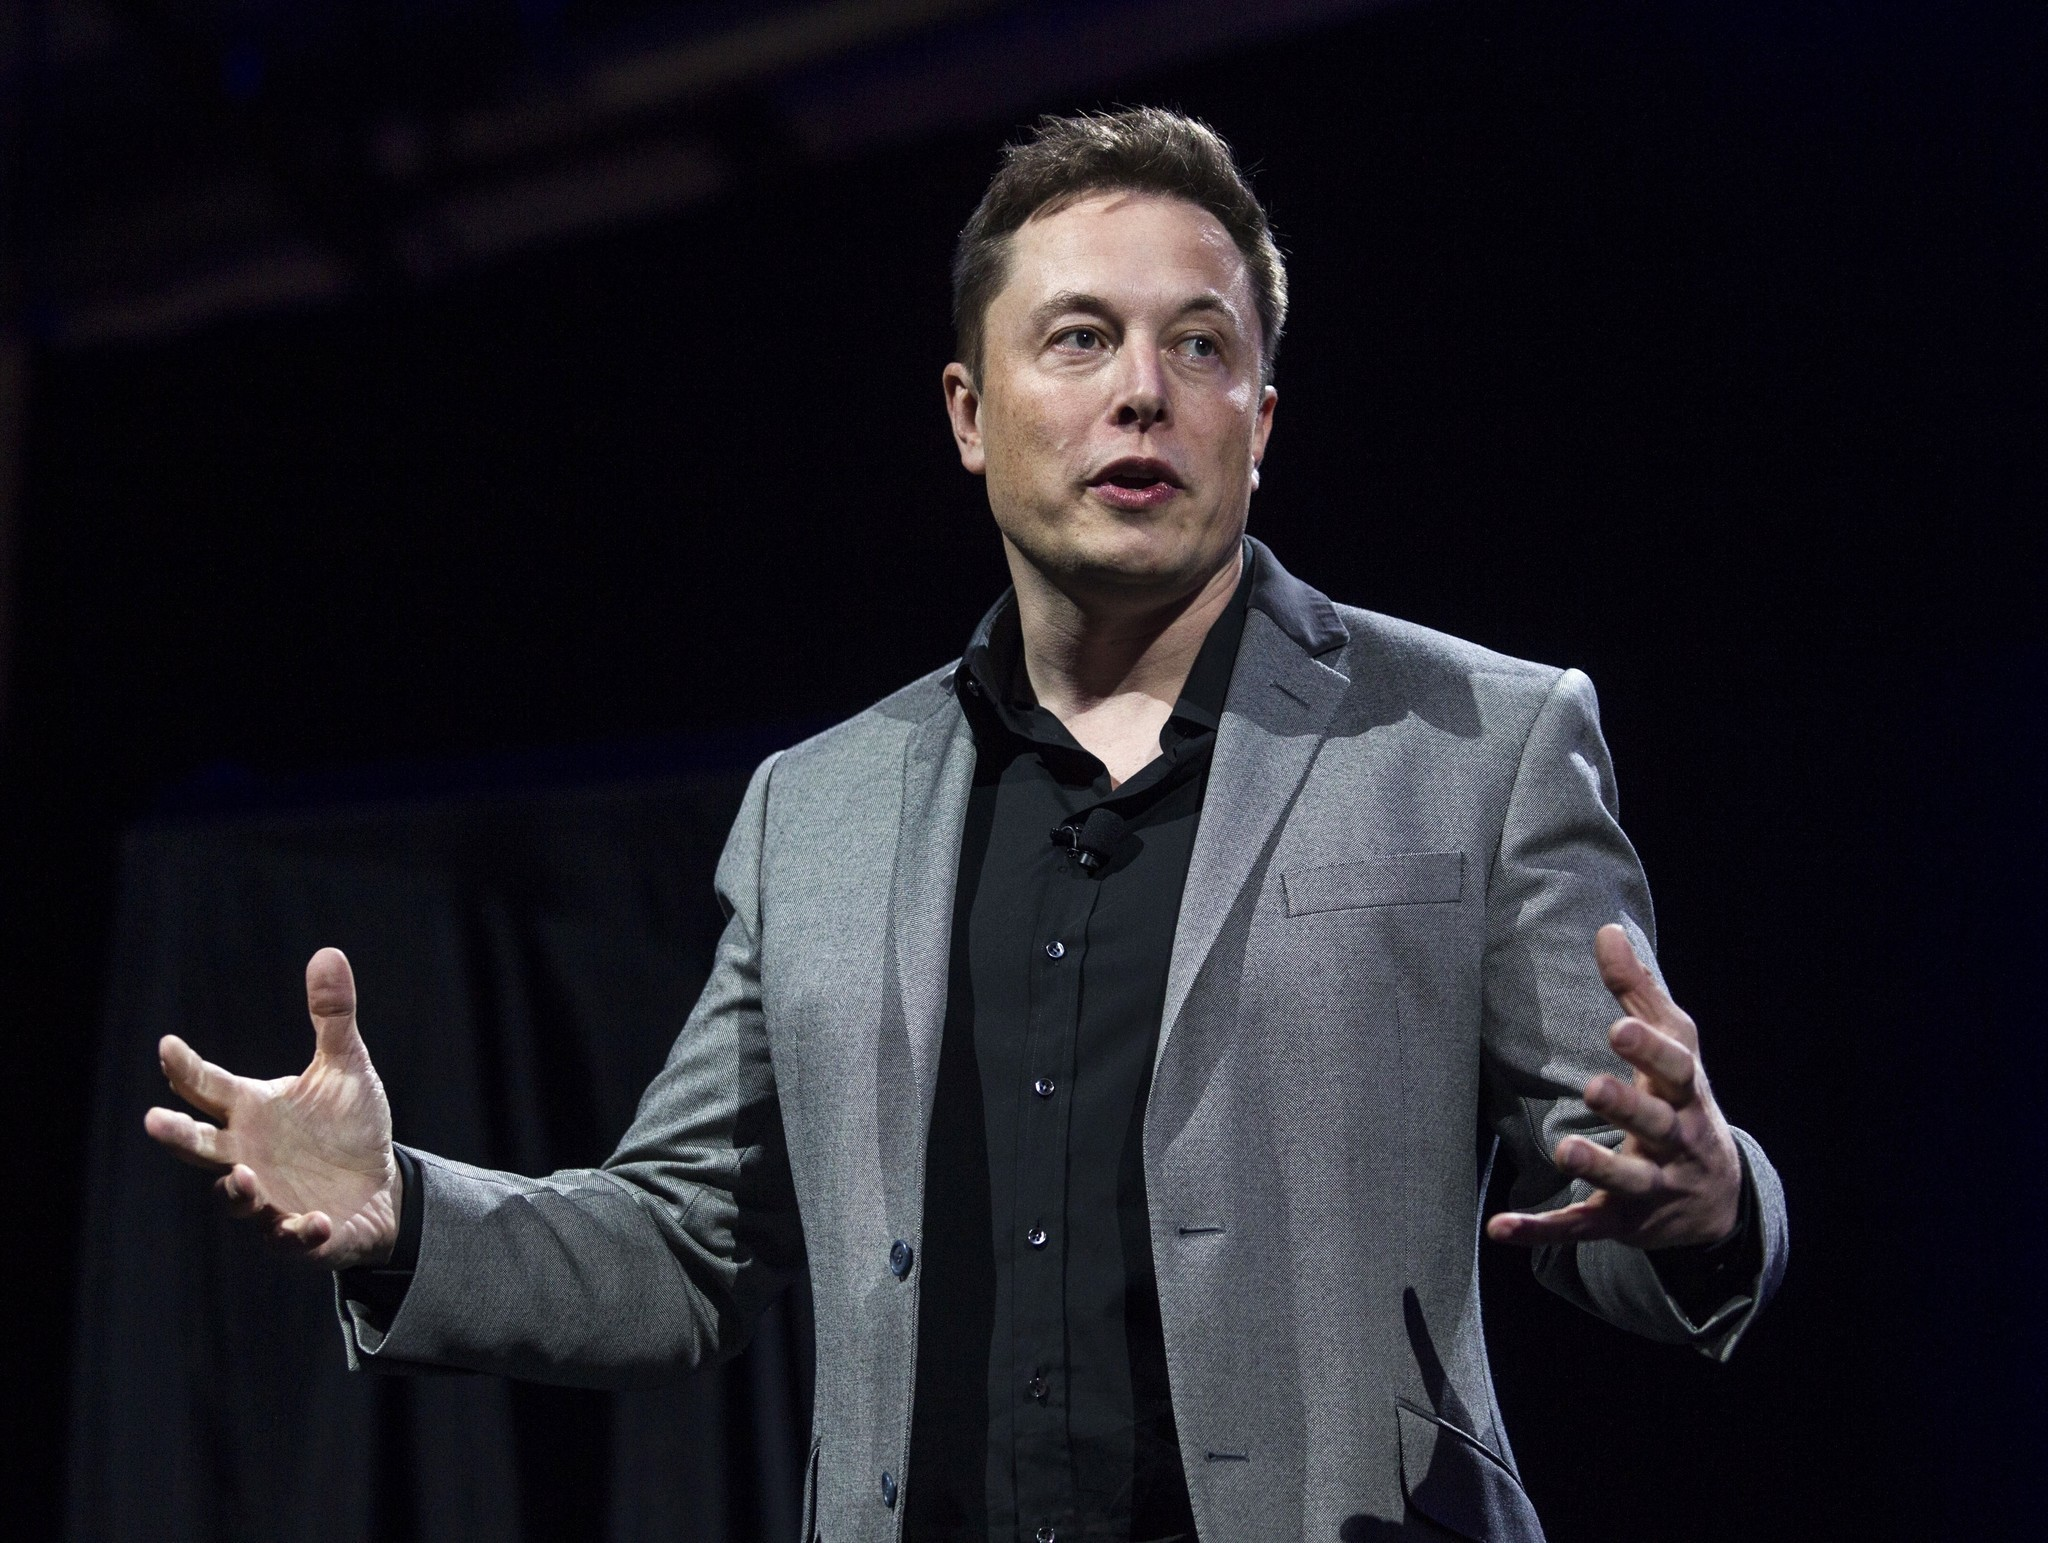 Dc5m United States Art In English Created At 2016 11 05 0410 397 X 303 Jpeg 73kb How To Find A Short Circuit An Auto Electrical Elon Musk Says Spacex Could Resume Launches December 218 31